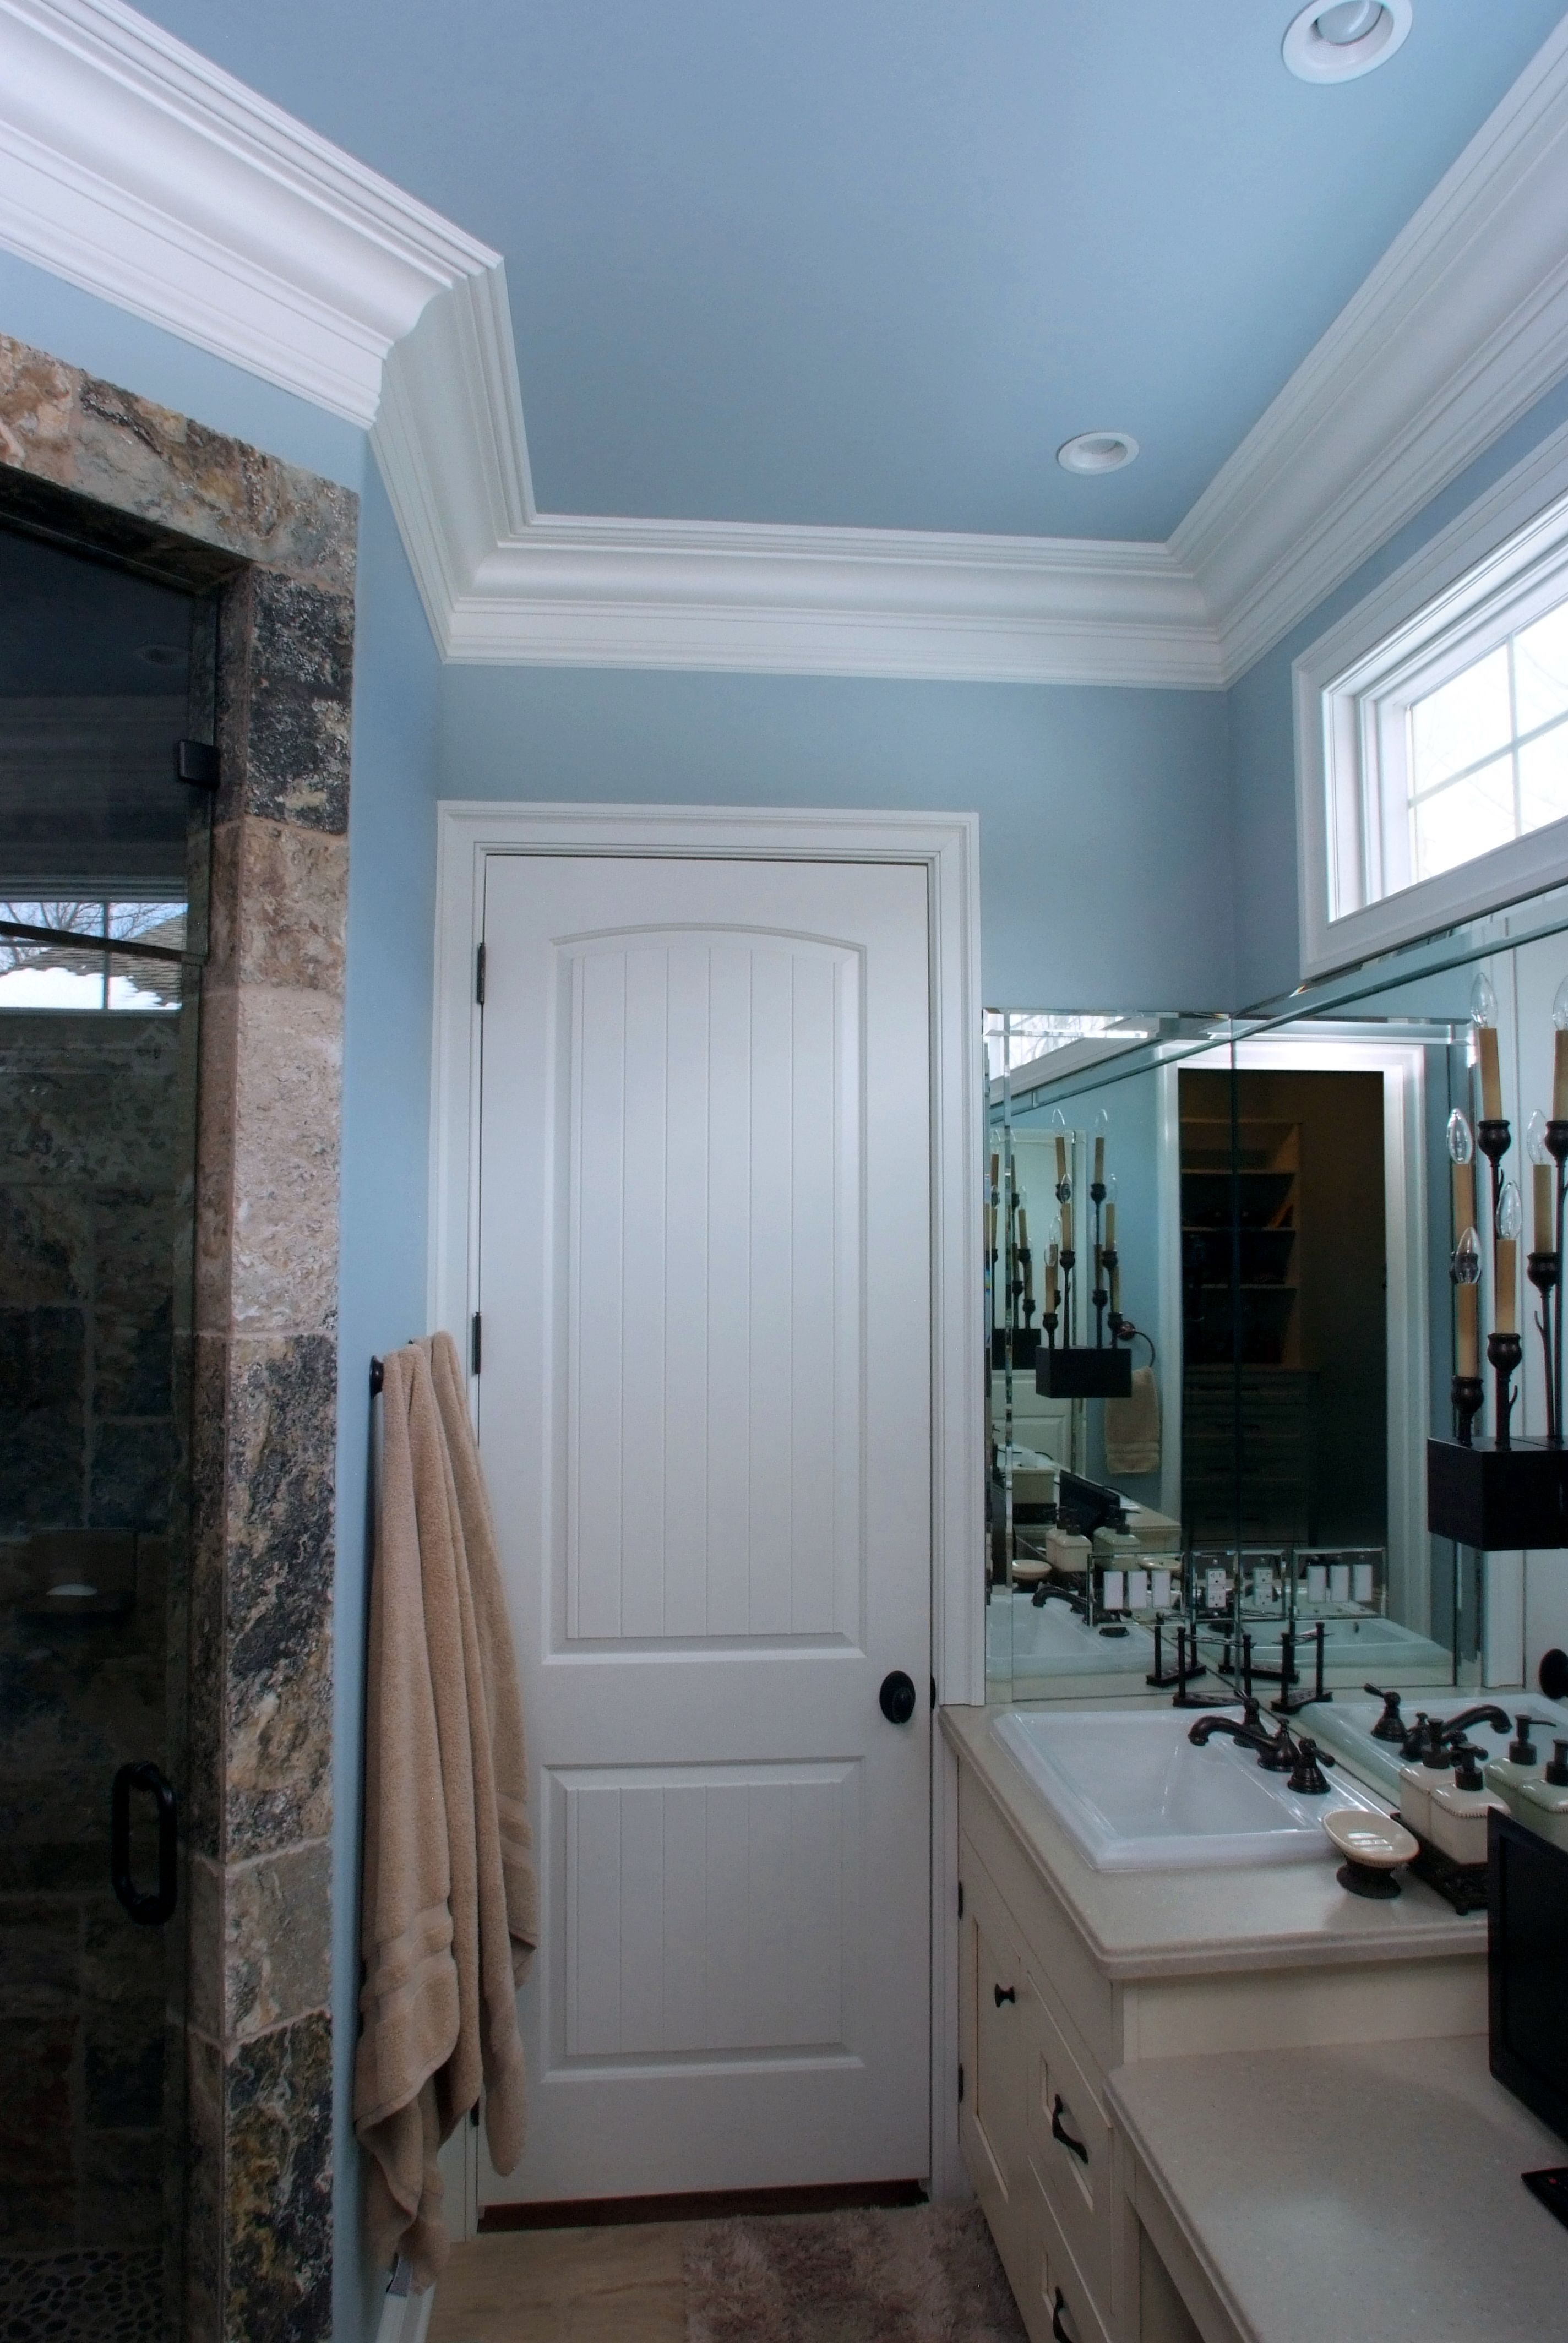 Sante Fe  Ft Painted Interior Bathroom Door With A Built Up Crown - Crown molding for bathroom